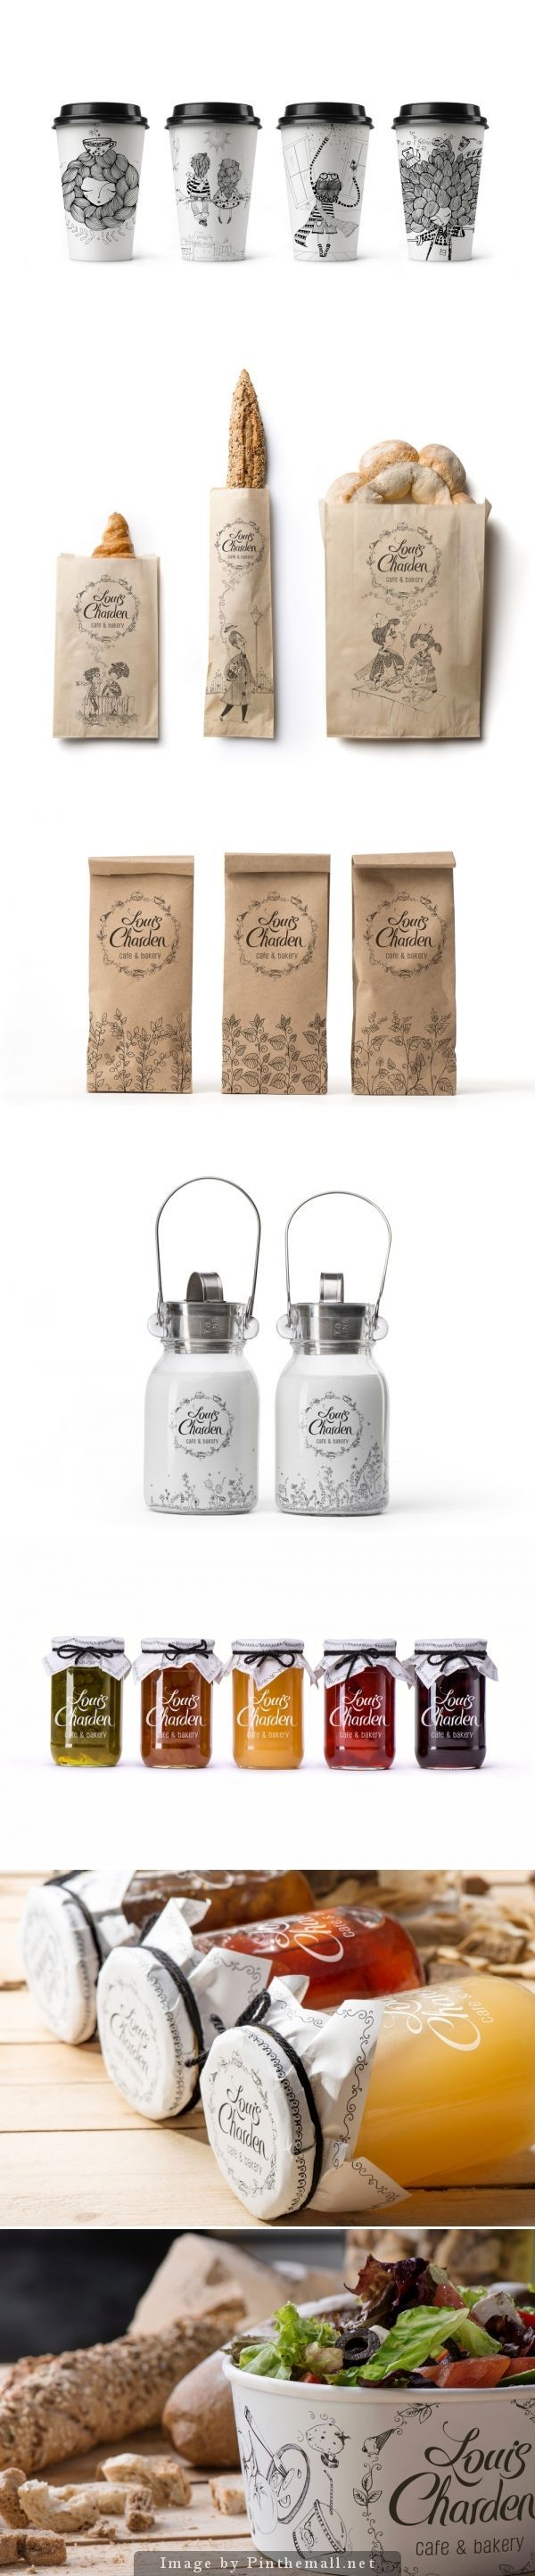 Packaging system / Louis Charden by Backbone Creative.